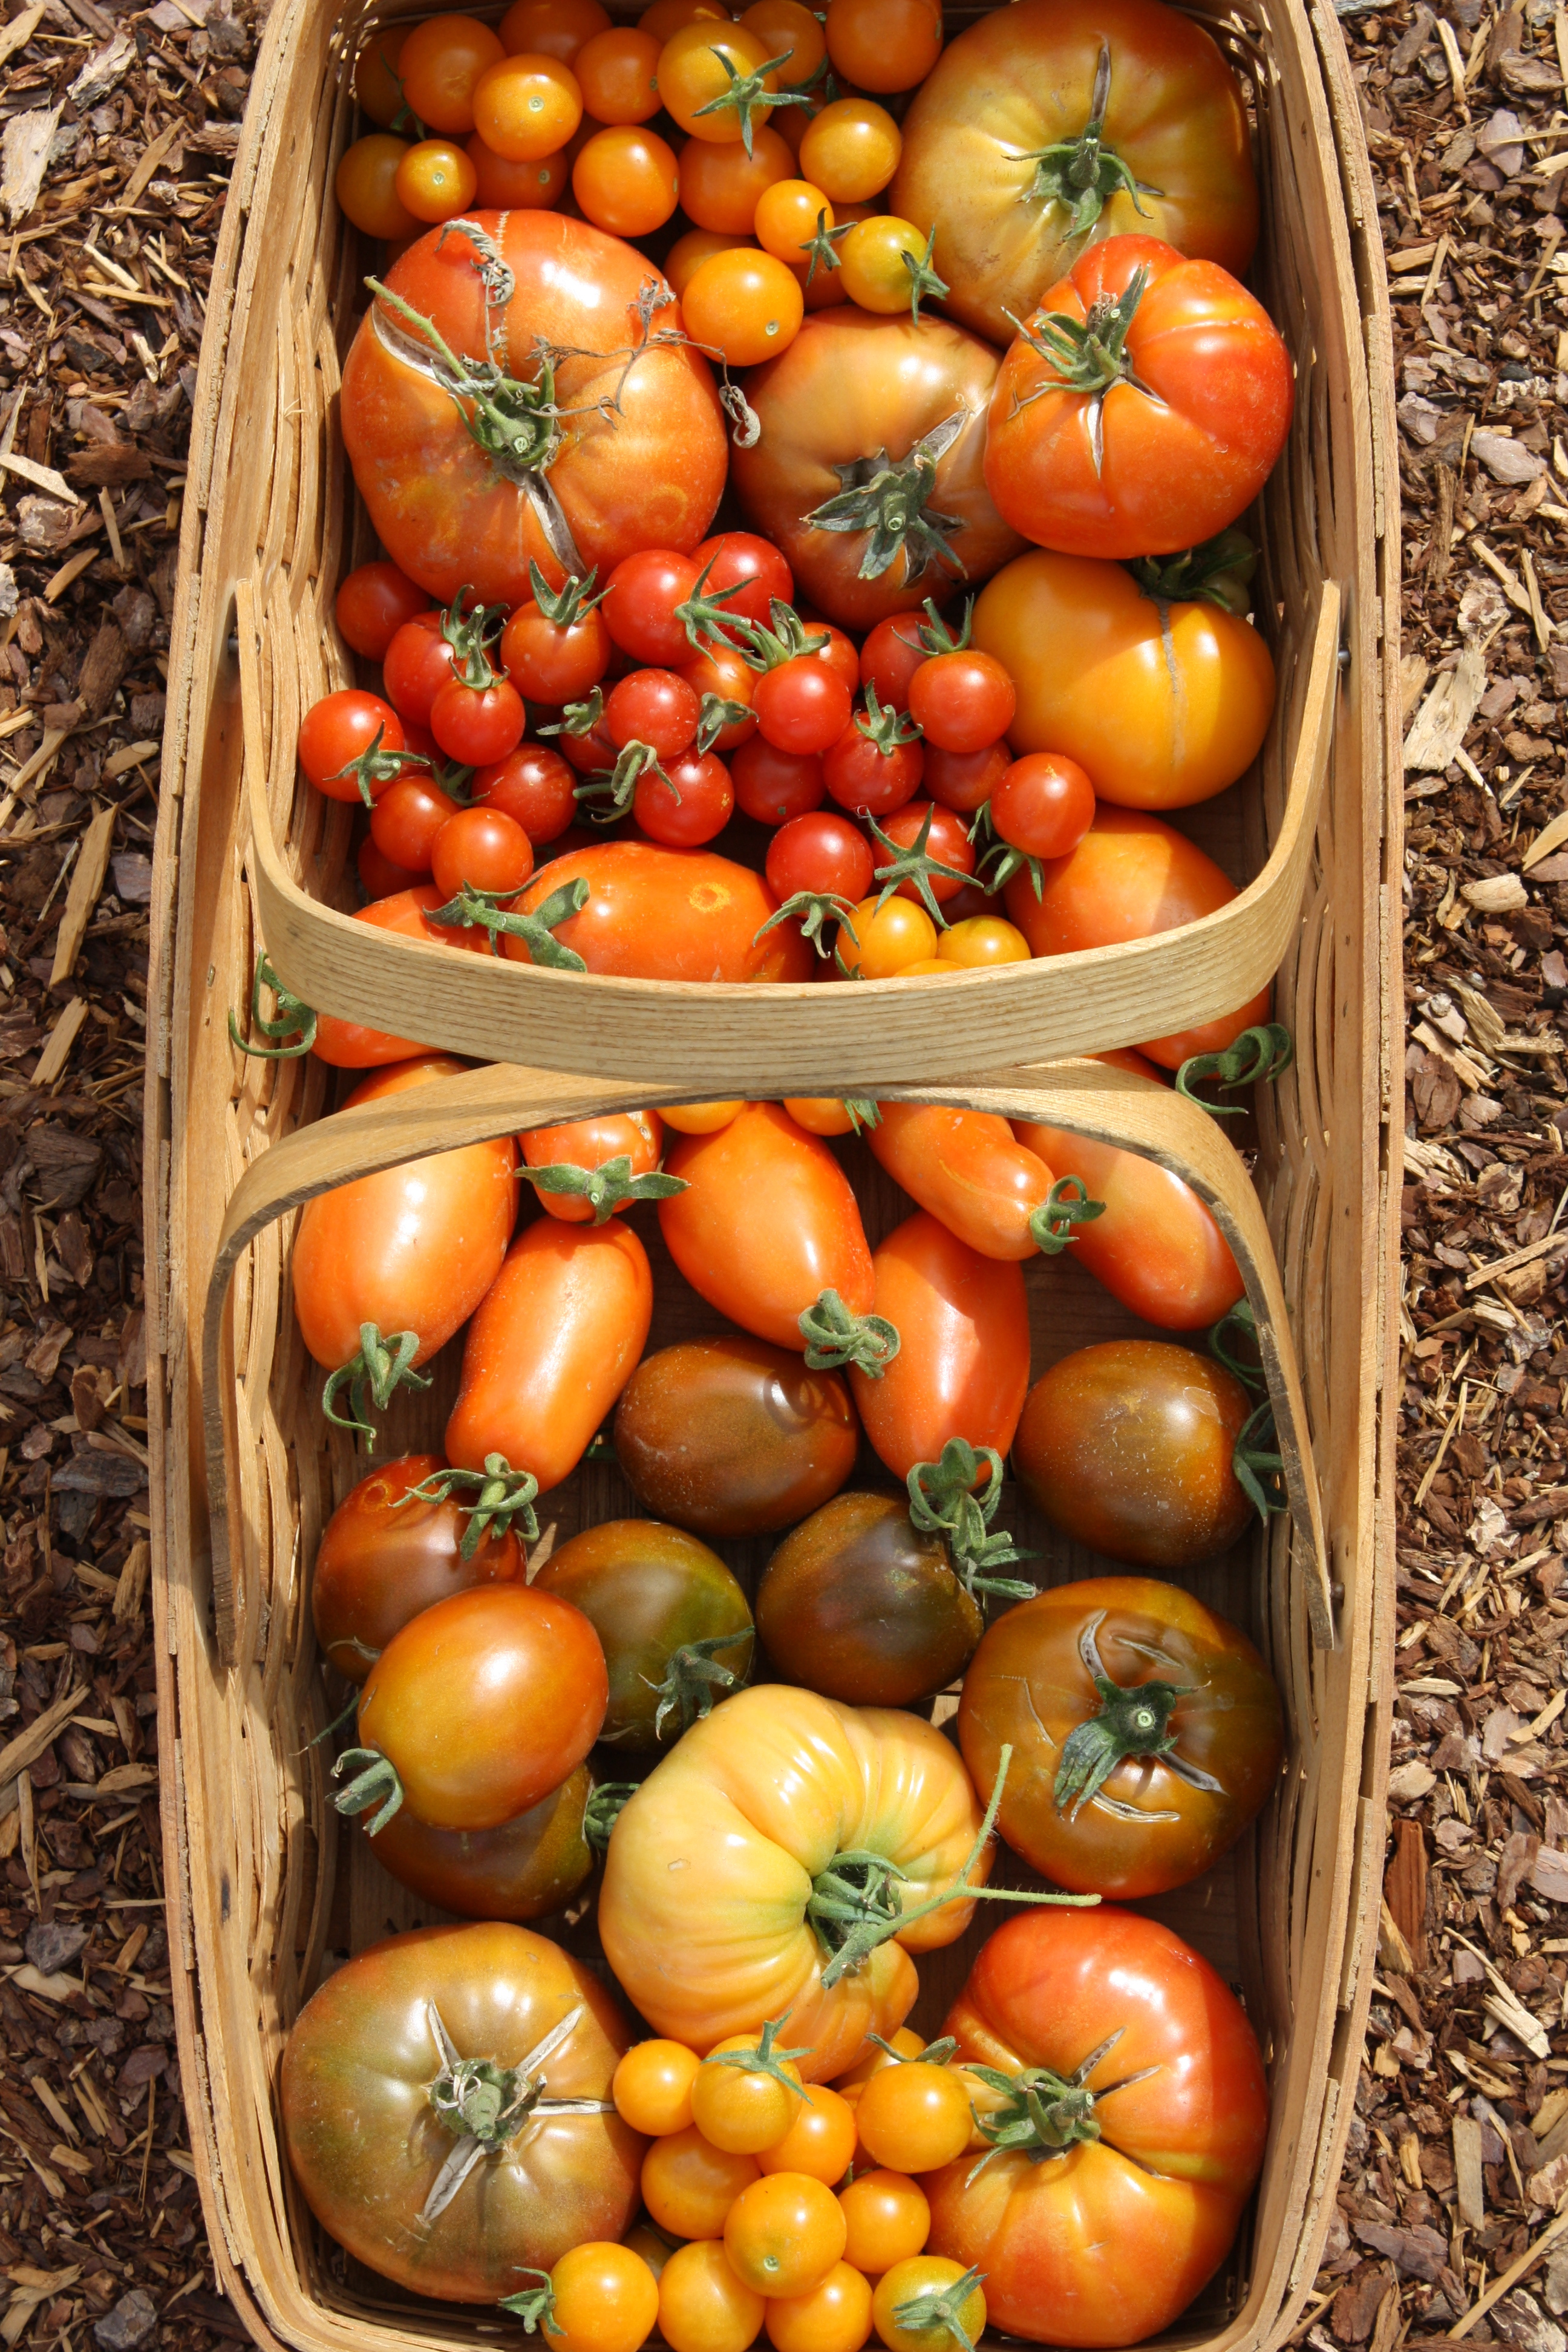 tomatoes and harvest prep the farm